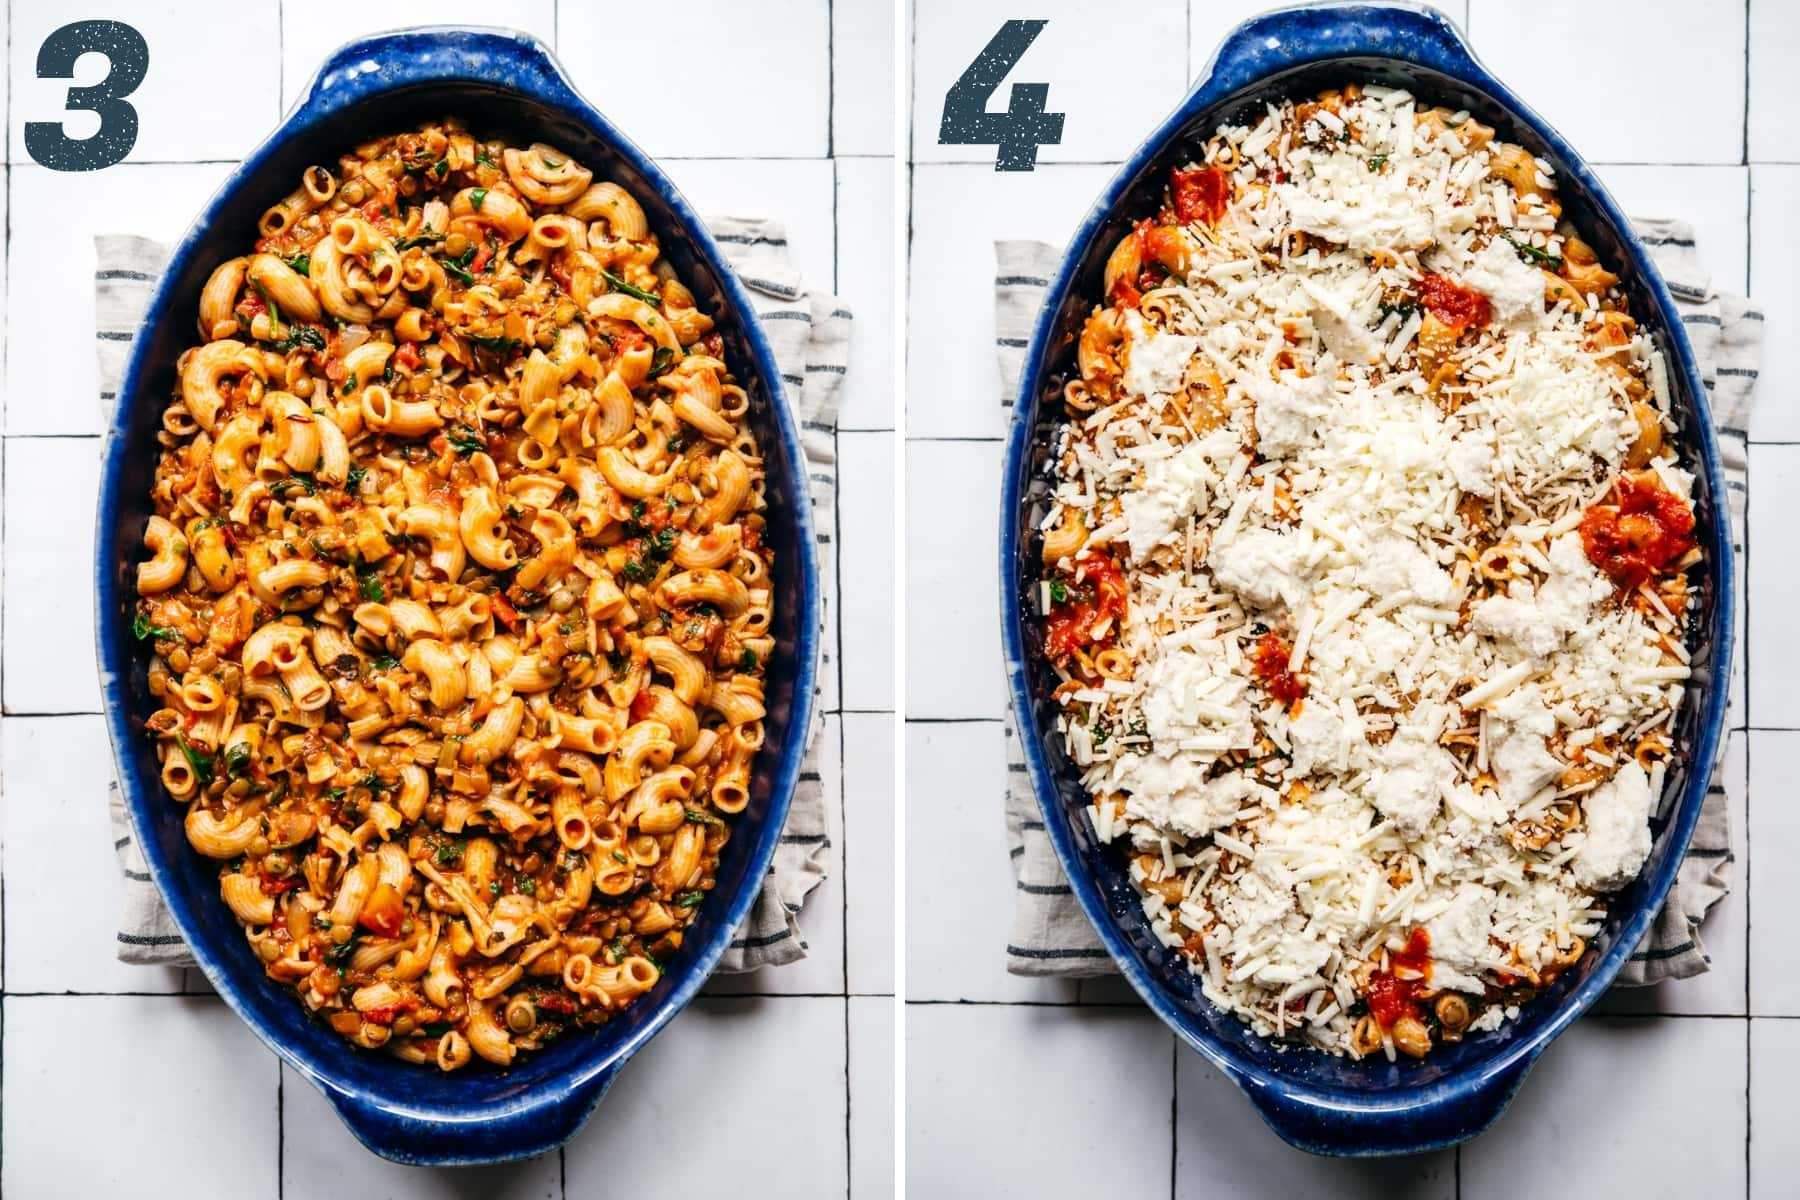 before and after topping vegan pasta bake with cheese before baking.